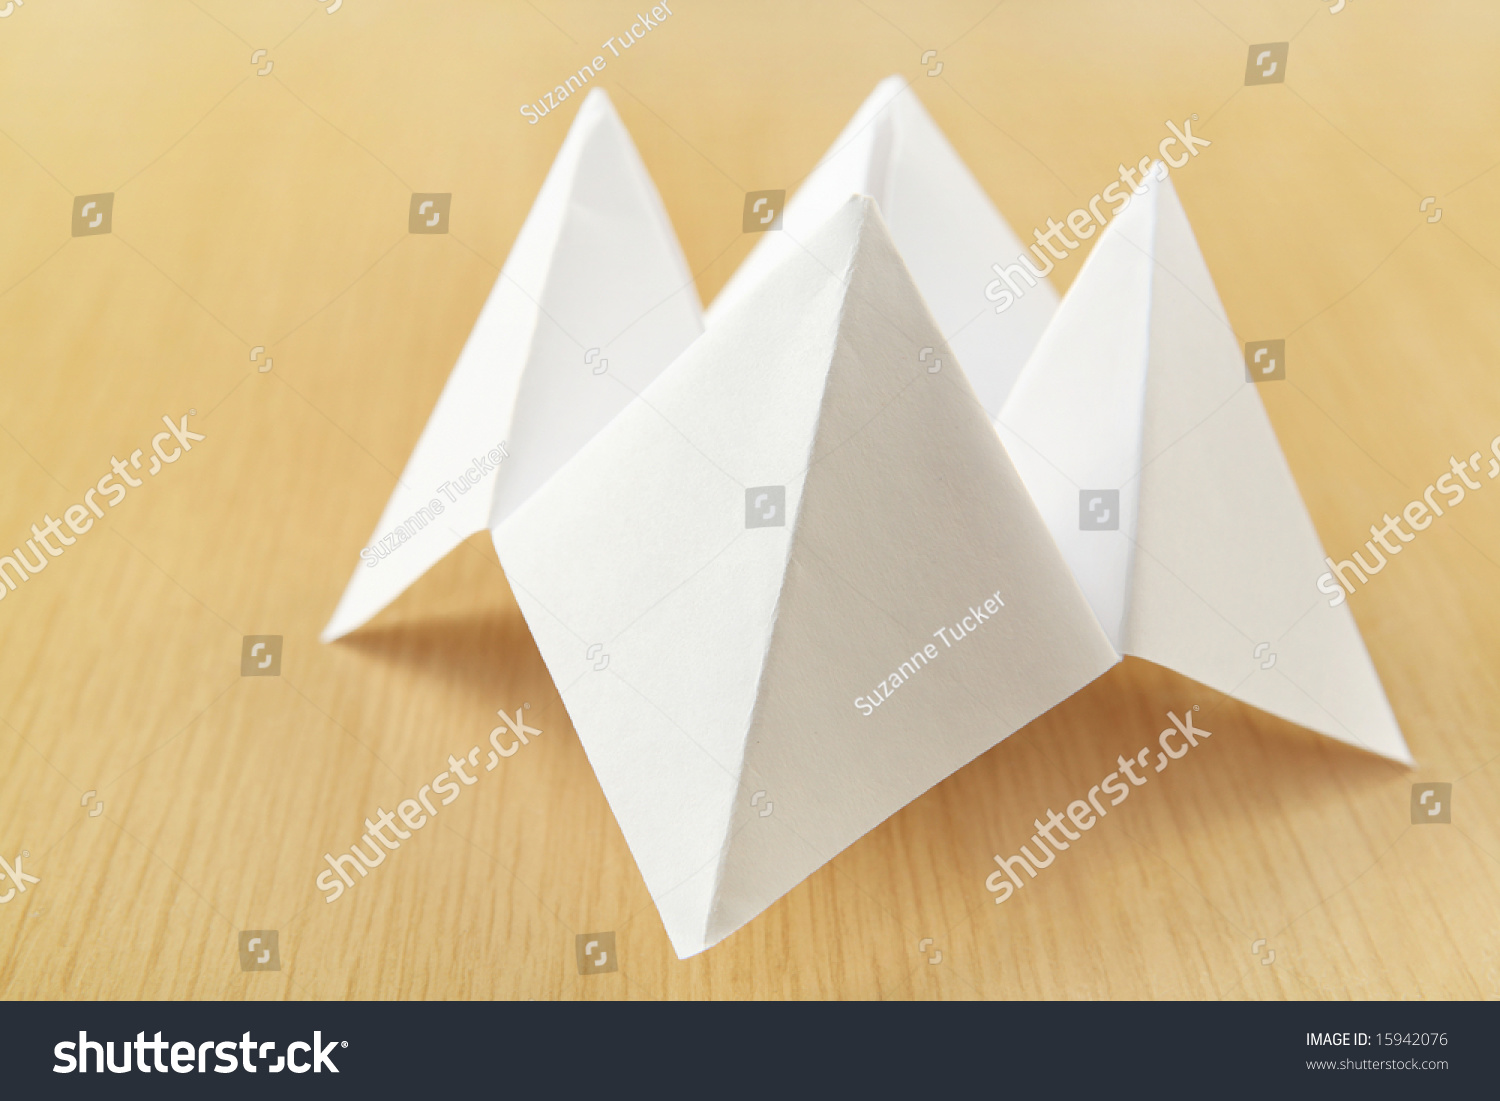 Paper cootie catcher fortune telling game stock photo 15942076 paper cootie catcher fortune telling game jeuxipadfo Images